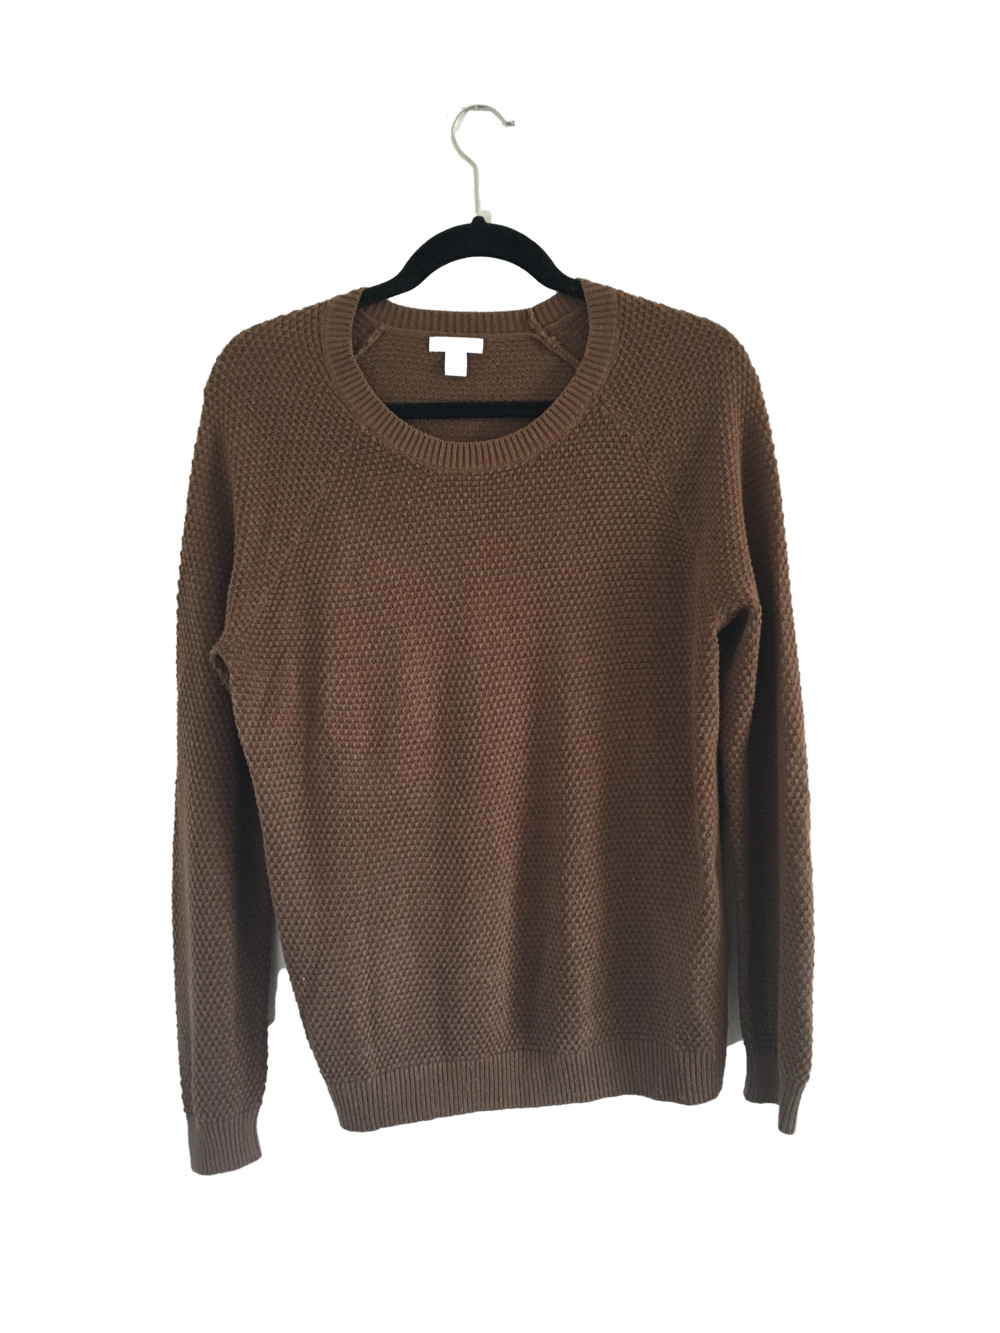 Brown Sweater.png